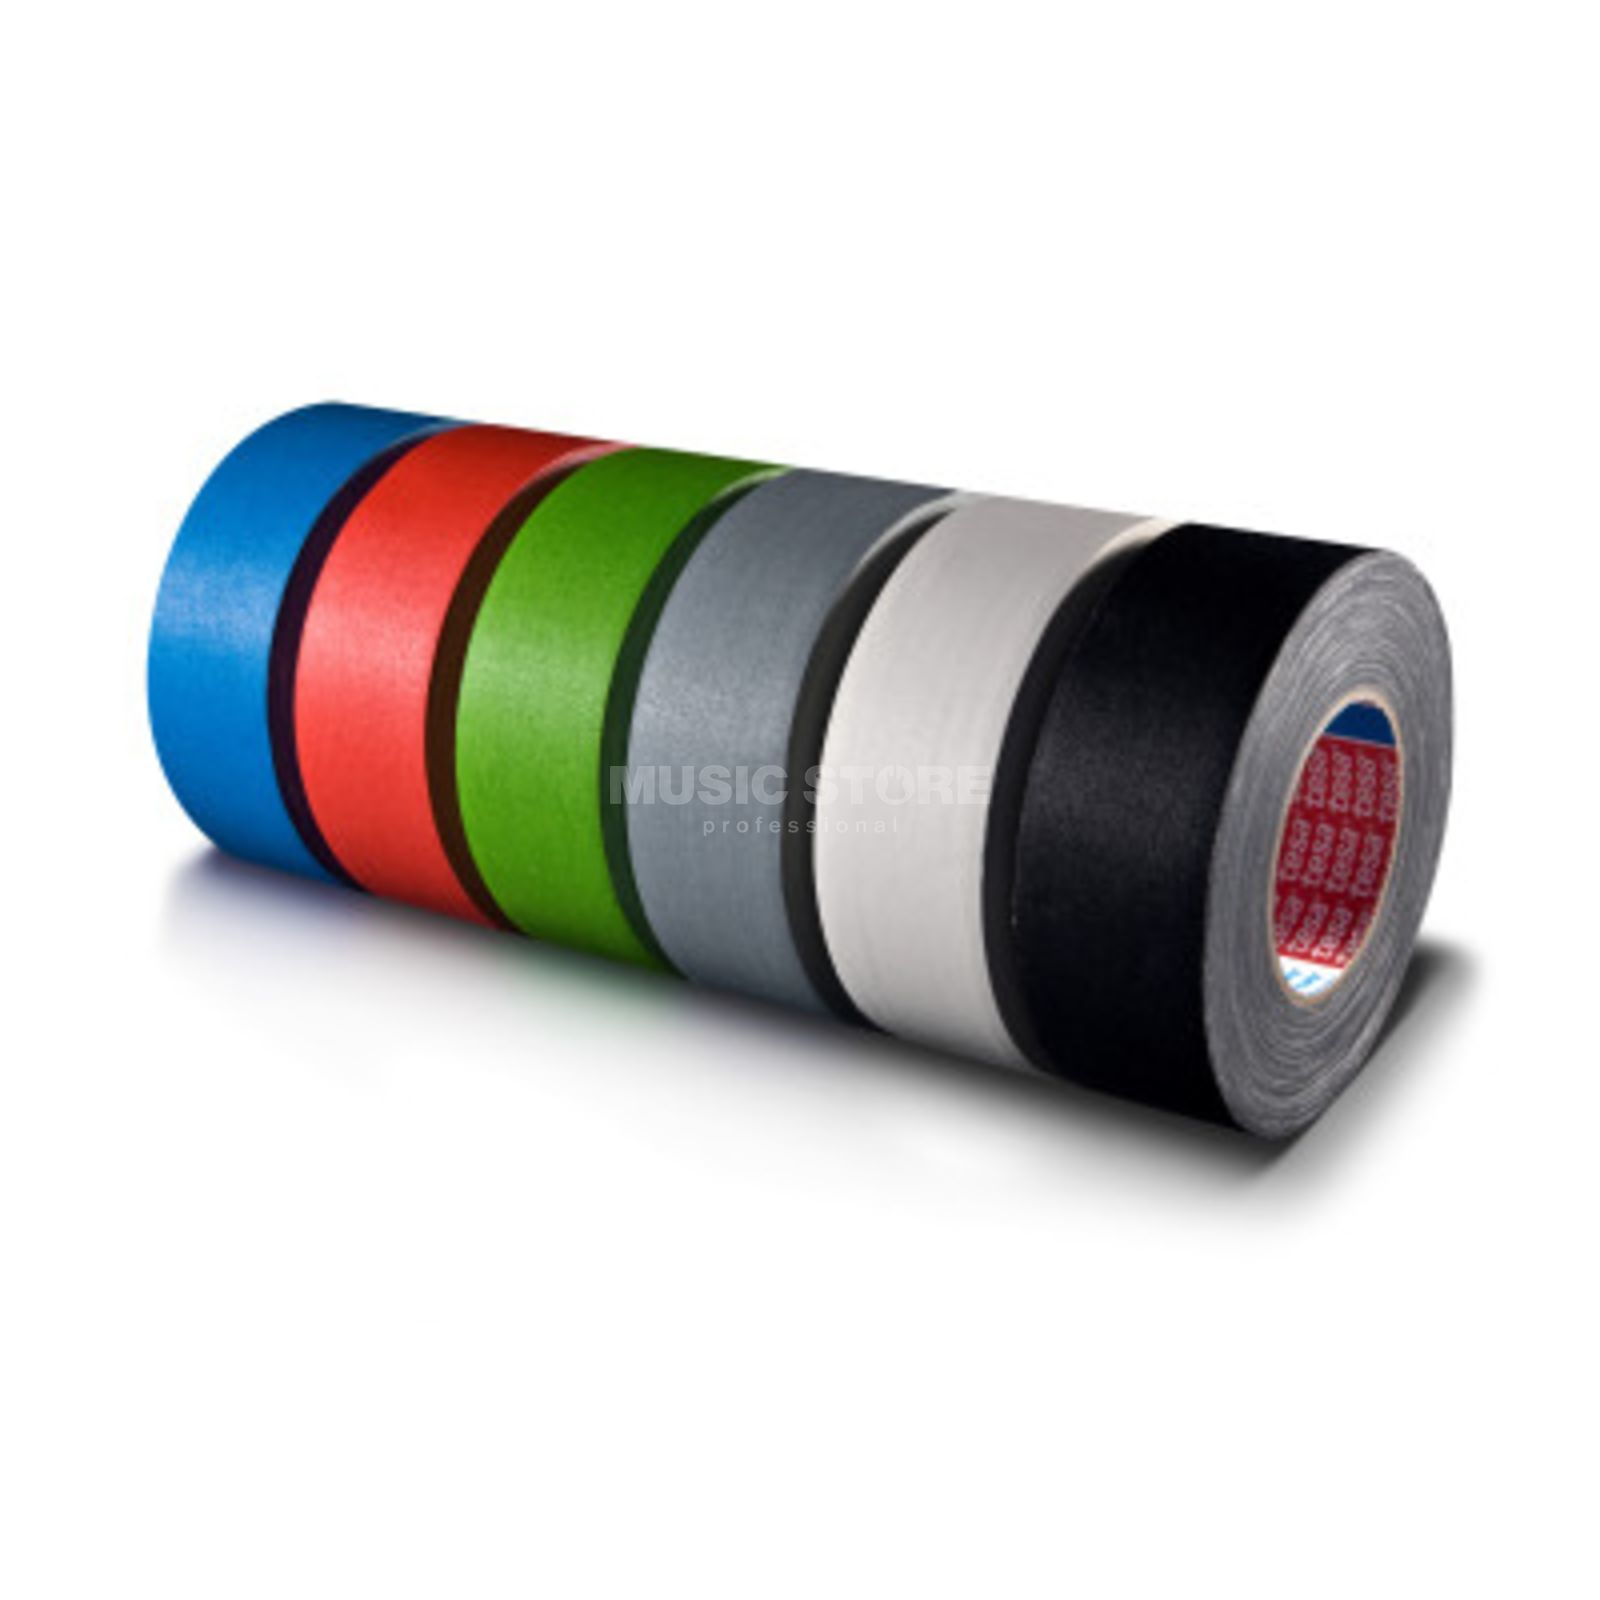 Tesa Highlight Gaffa Tape 4671 mattschwarz, 50m, 50mm Produktbillede